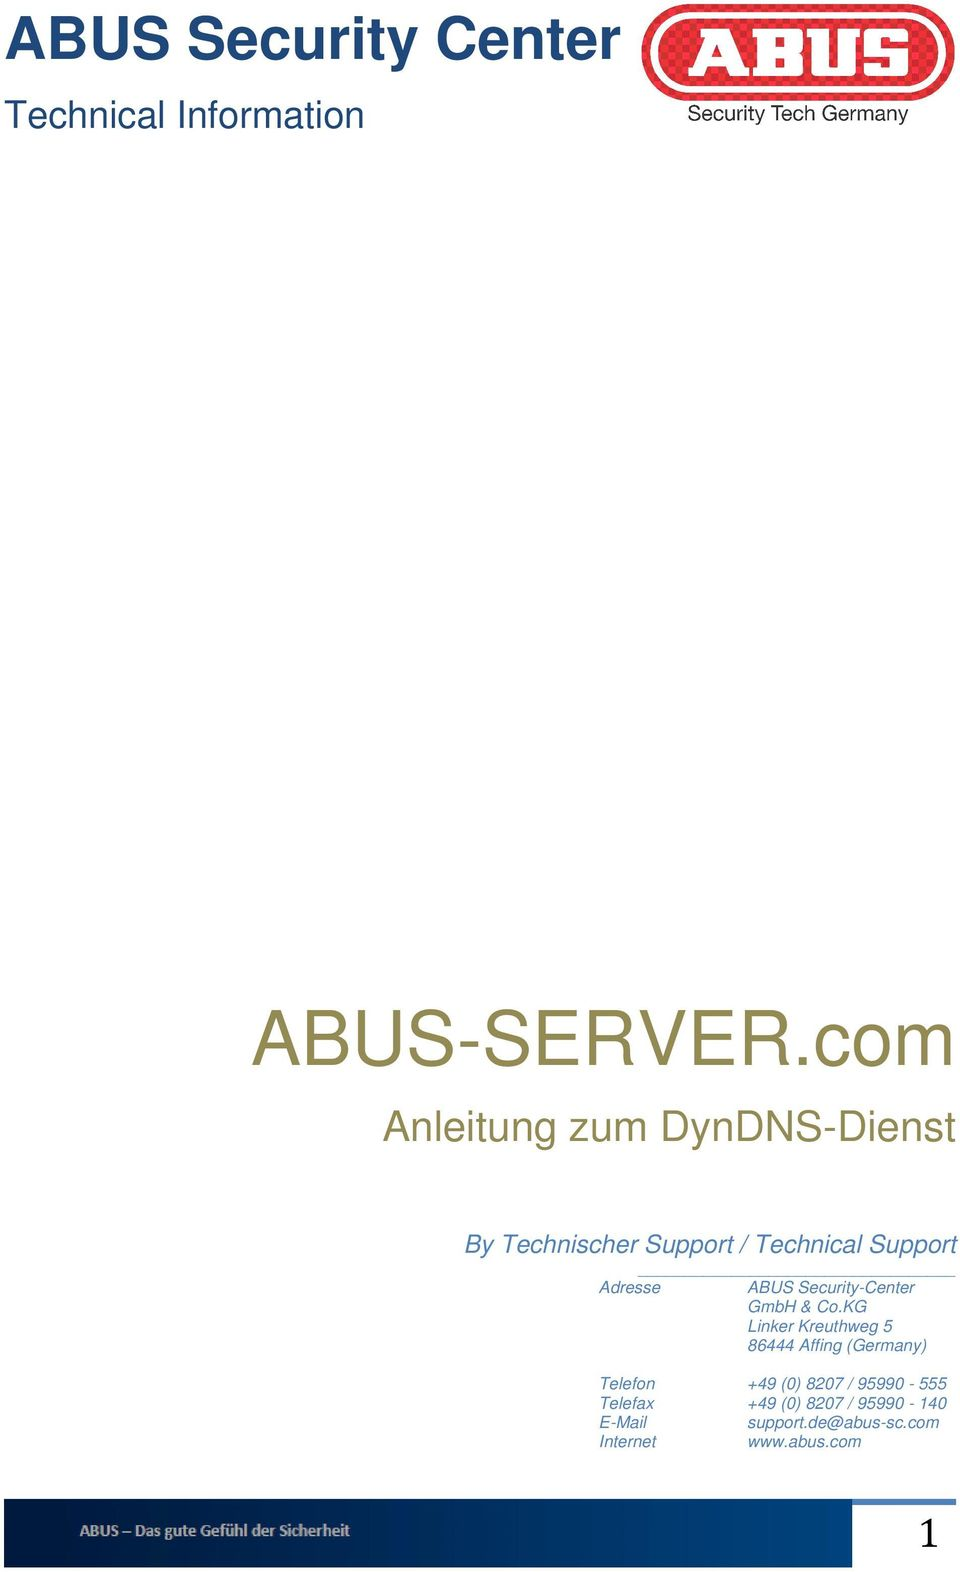 ABUS Security-Center GmbH & Co.